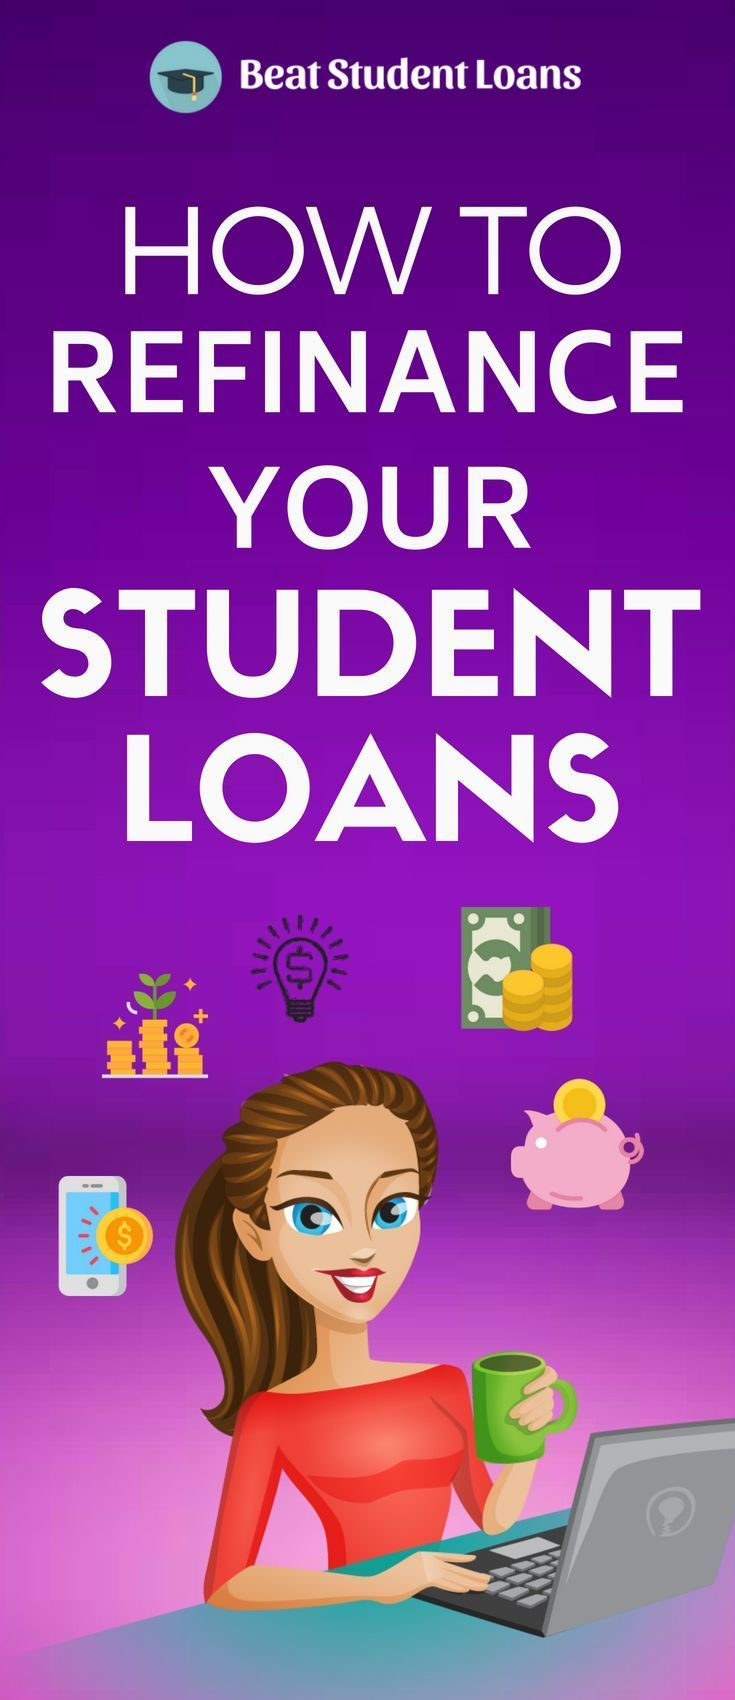 Refinance Student Loans Reddit Top Lenders 2020 Beat Student Loans Refinance Student Loans Student Loans Paying Off Student Loans